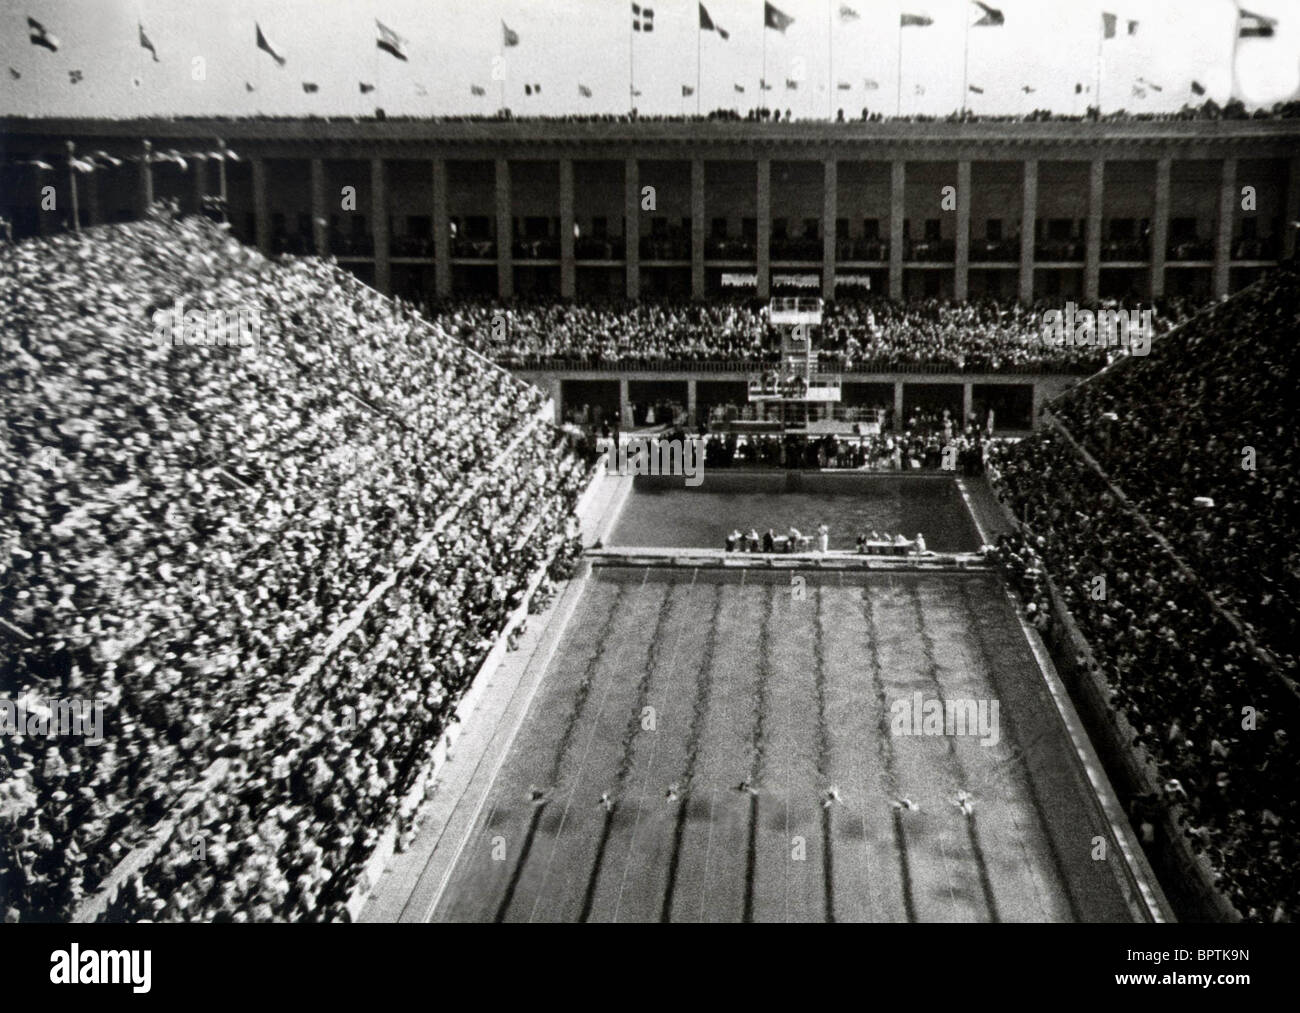 Swimmingpool Berlin Berlin Olympics Swimming Pool Berlin Olympics 1936 1936 Stock